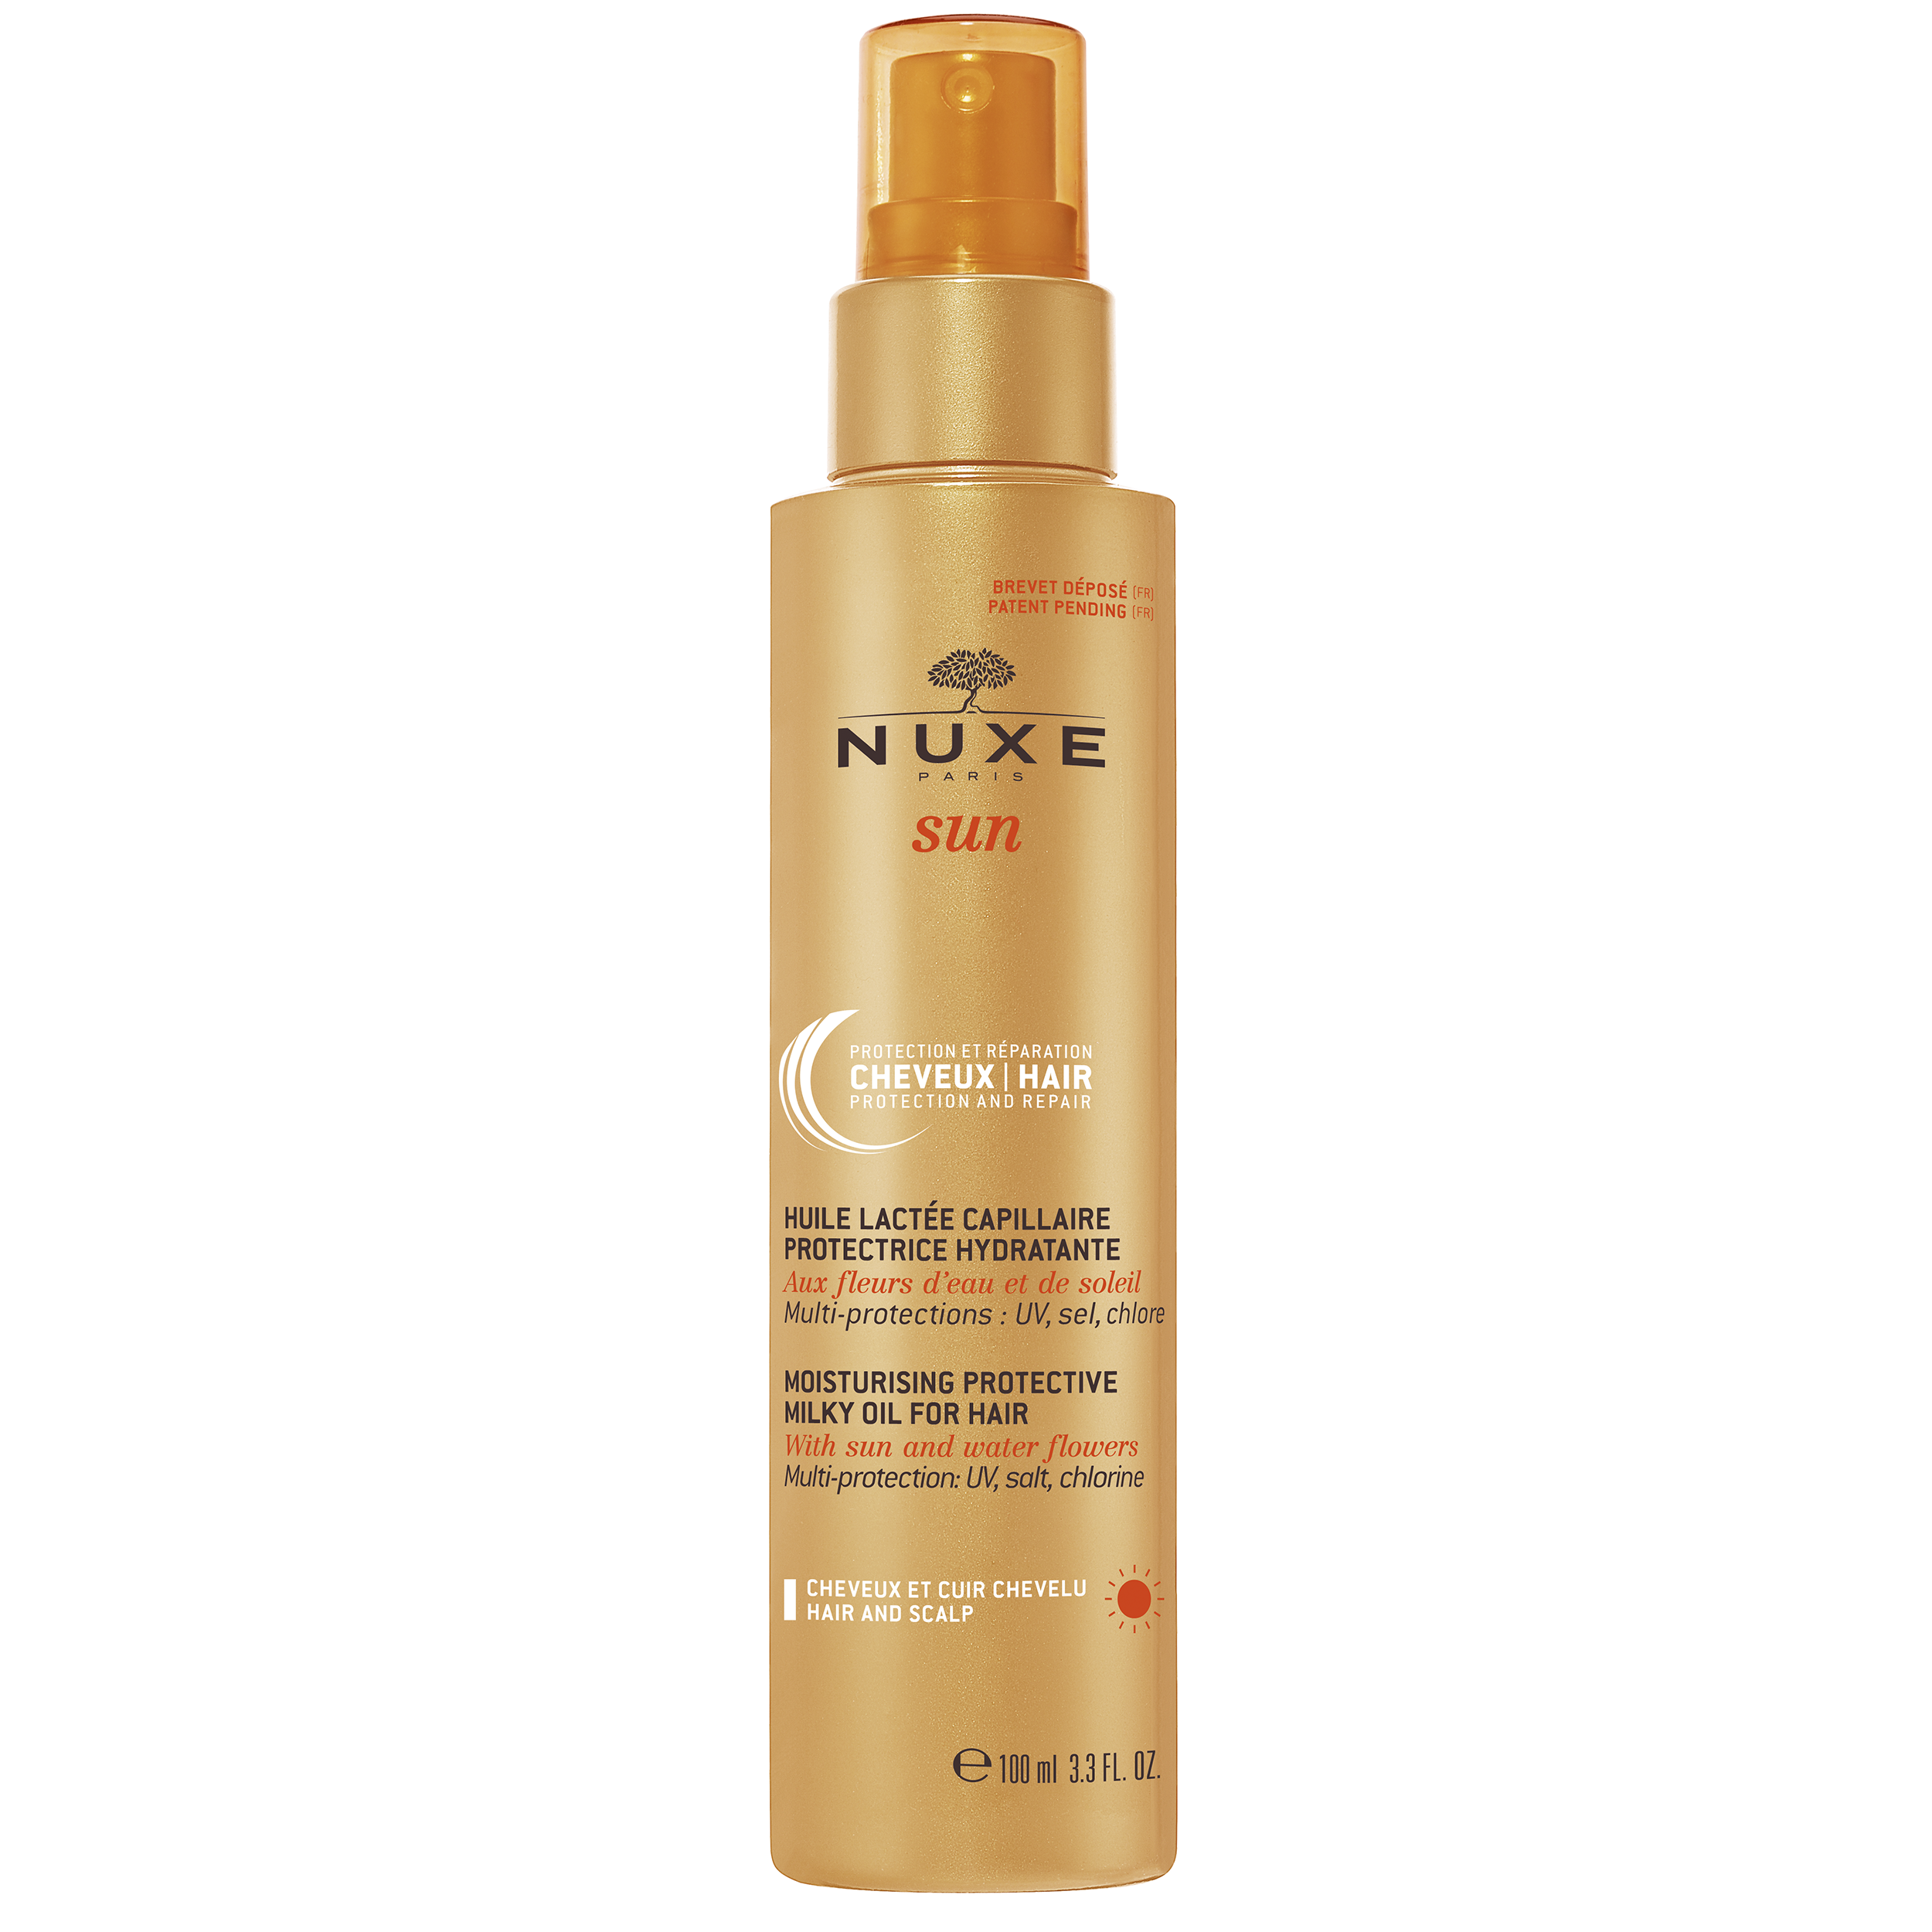 NUXE_SUN_Spray_Hair_and_Scalp_100_mlL.png